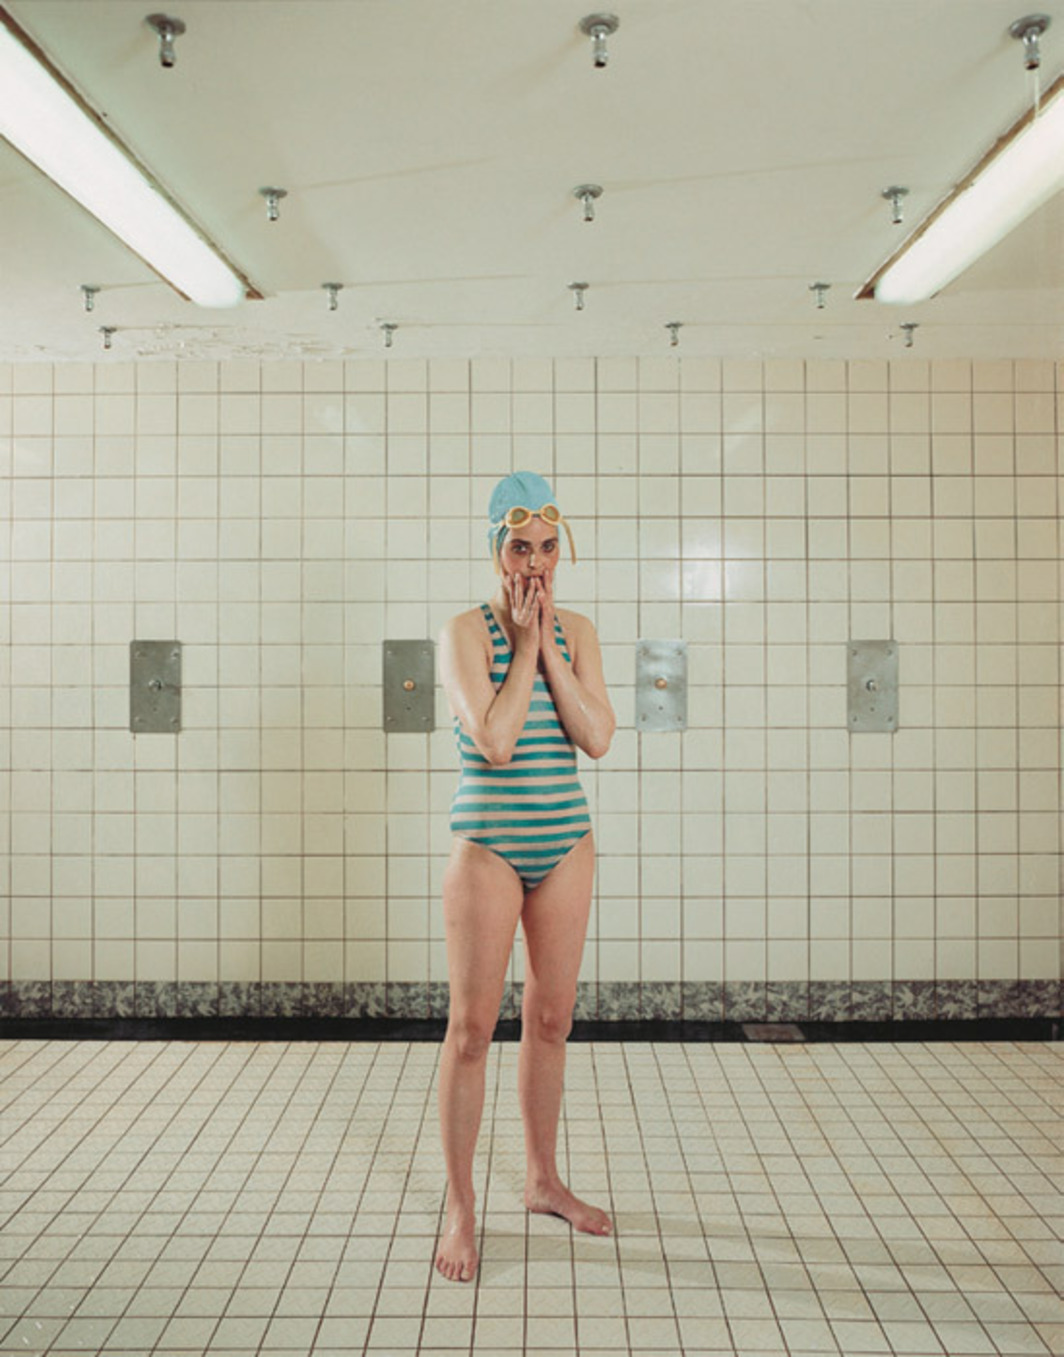 "Rineke Dijkstra, Self-portrait, Marnixbad, Amsterdam, the Netherlands, June 19, 1991, color photograph, 24 7/16 x 20 1/2""."